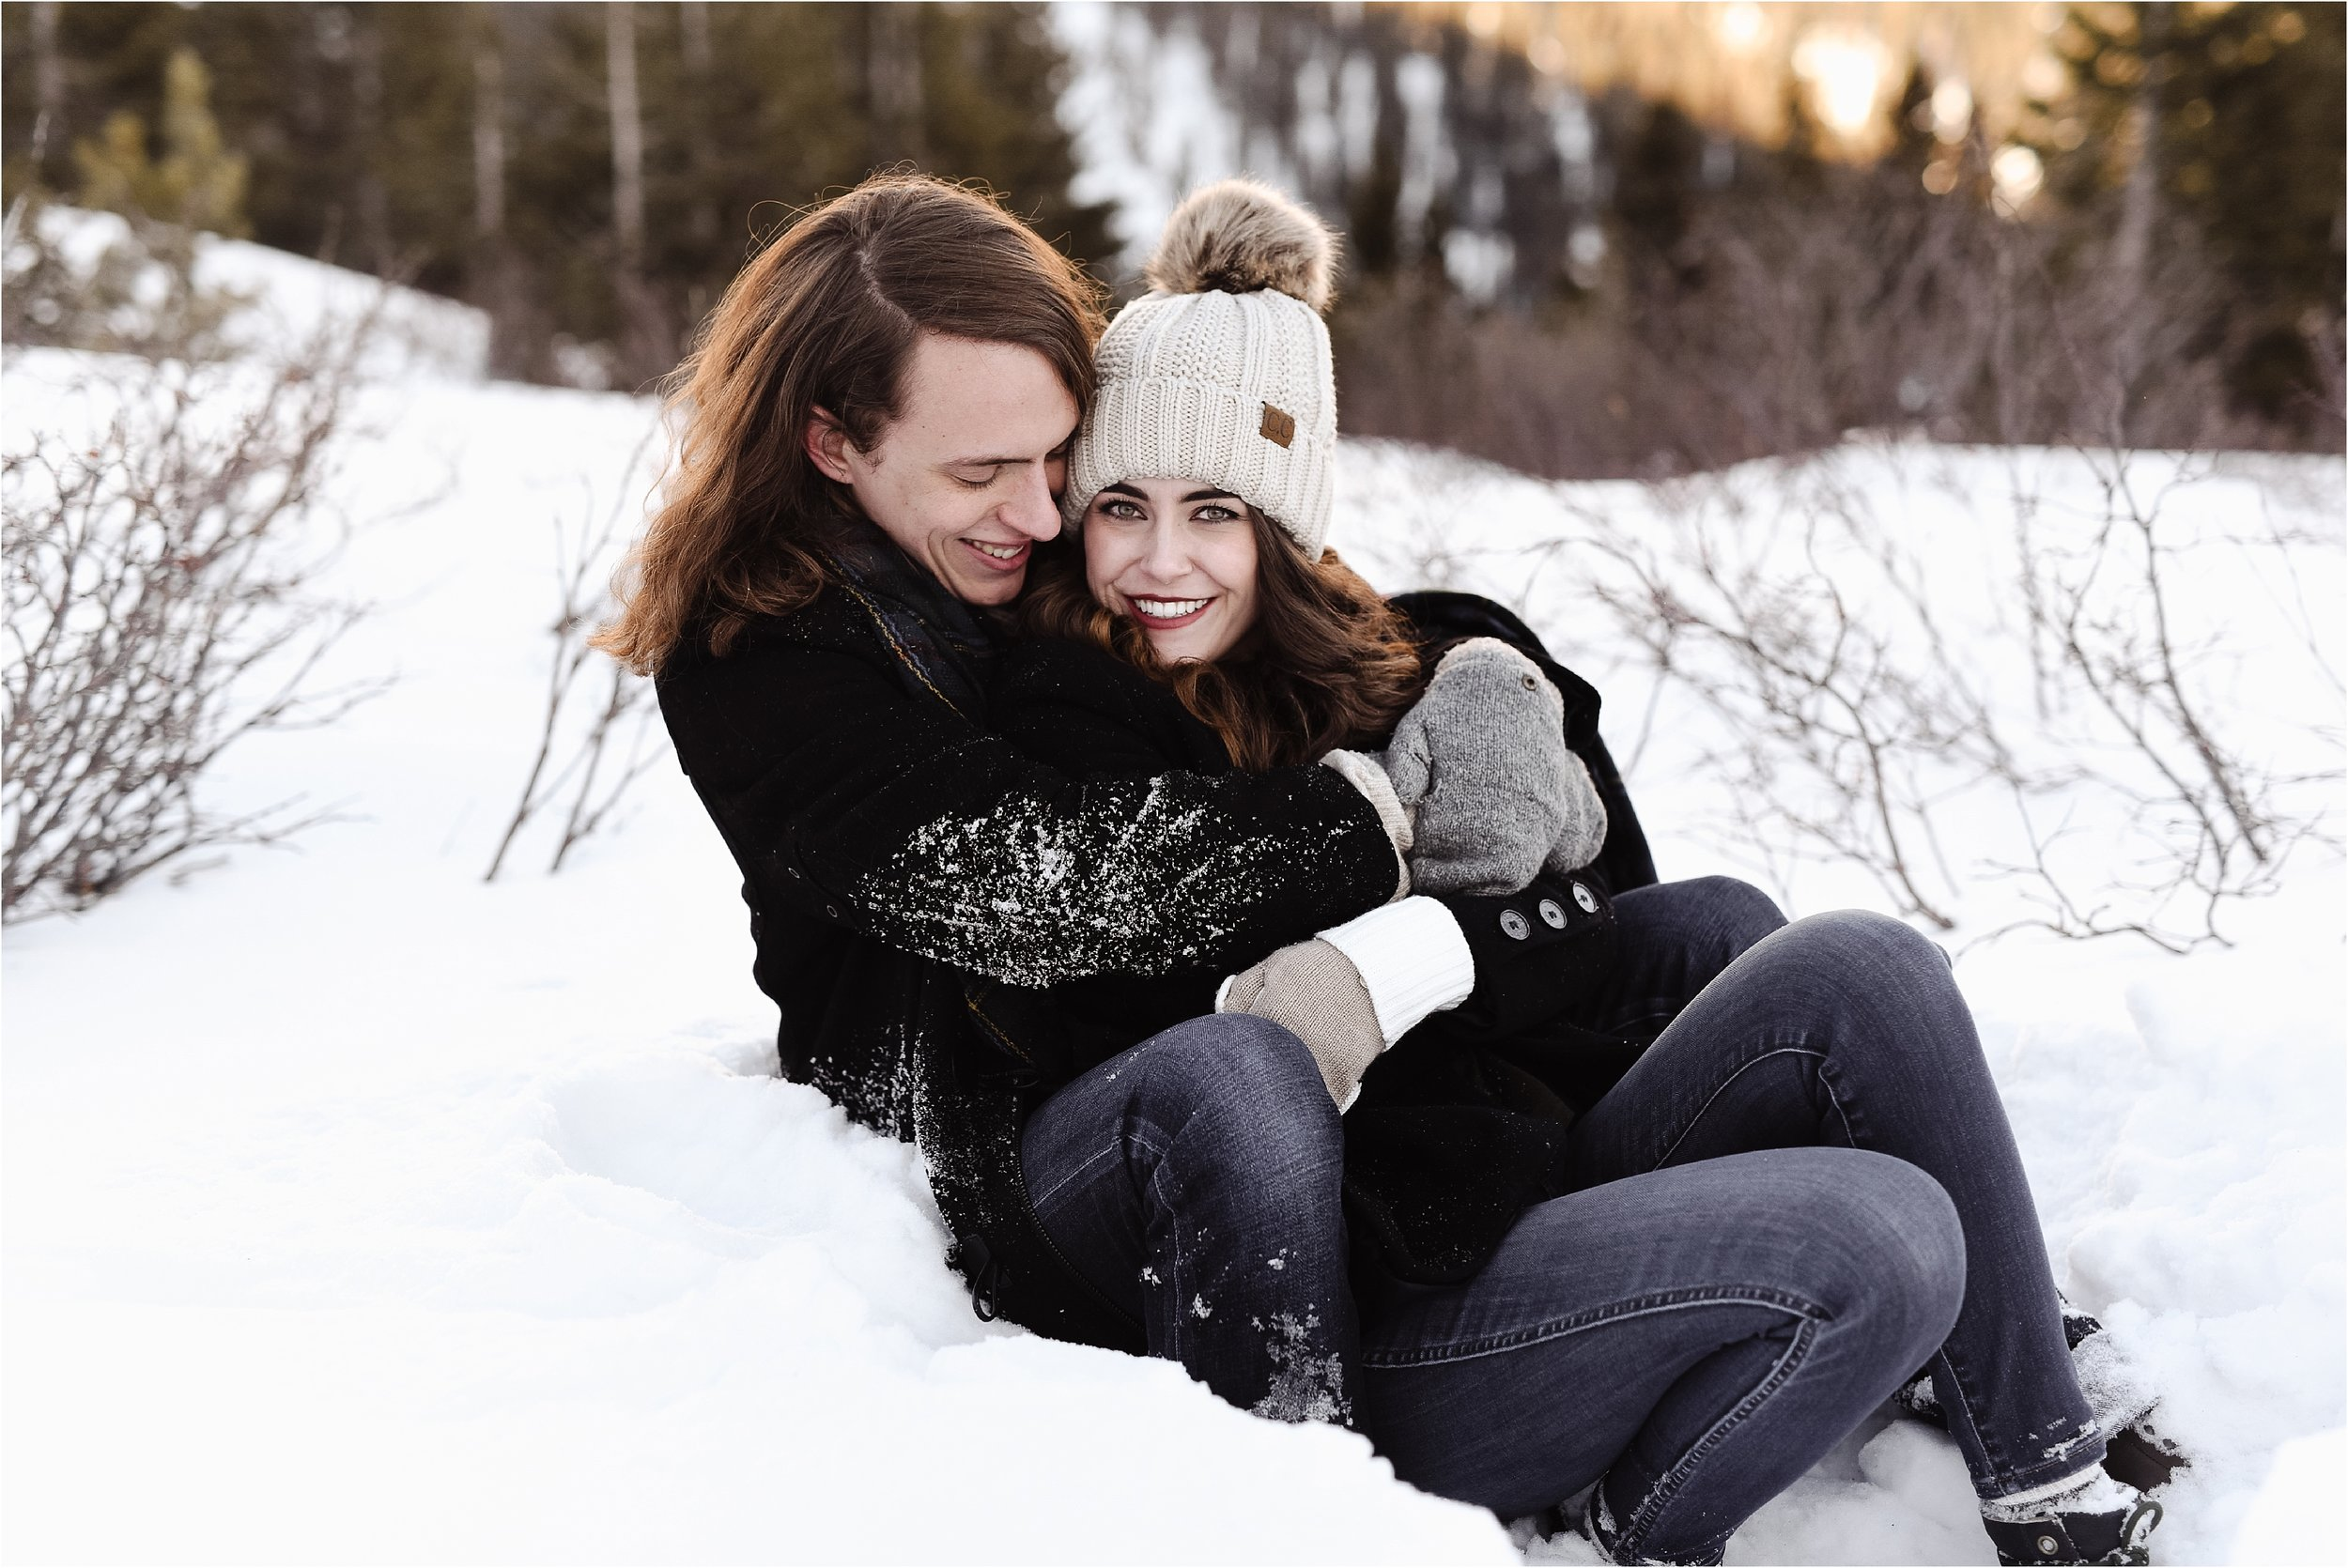 Loveland Pass, Colorado, Engagement Session Photos-15.jpg